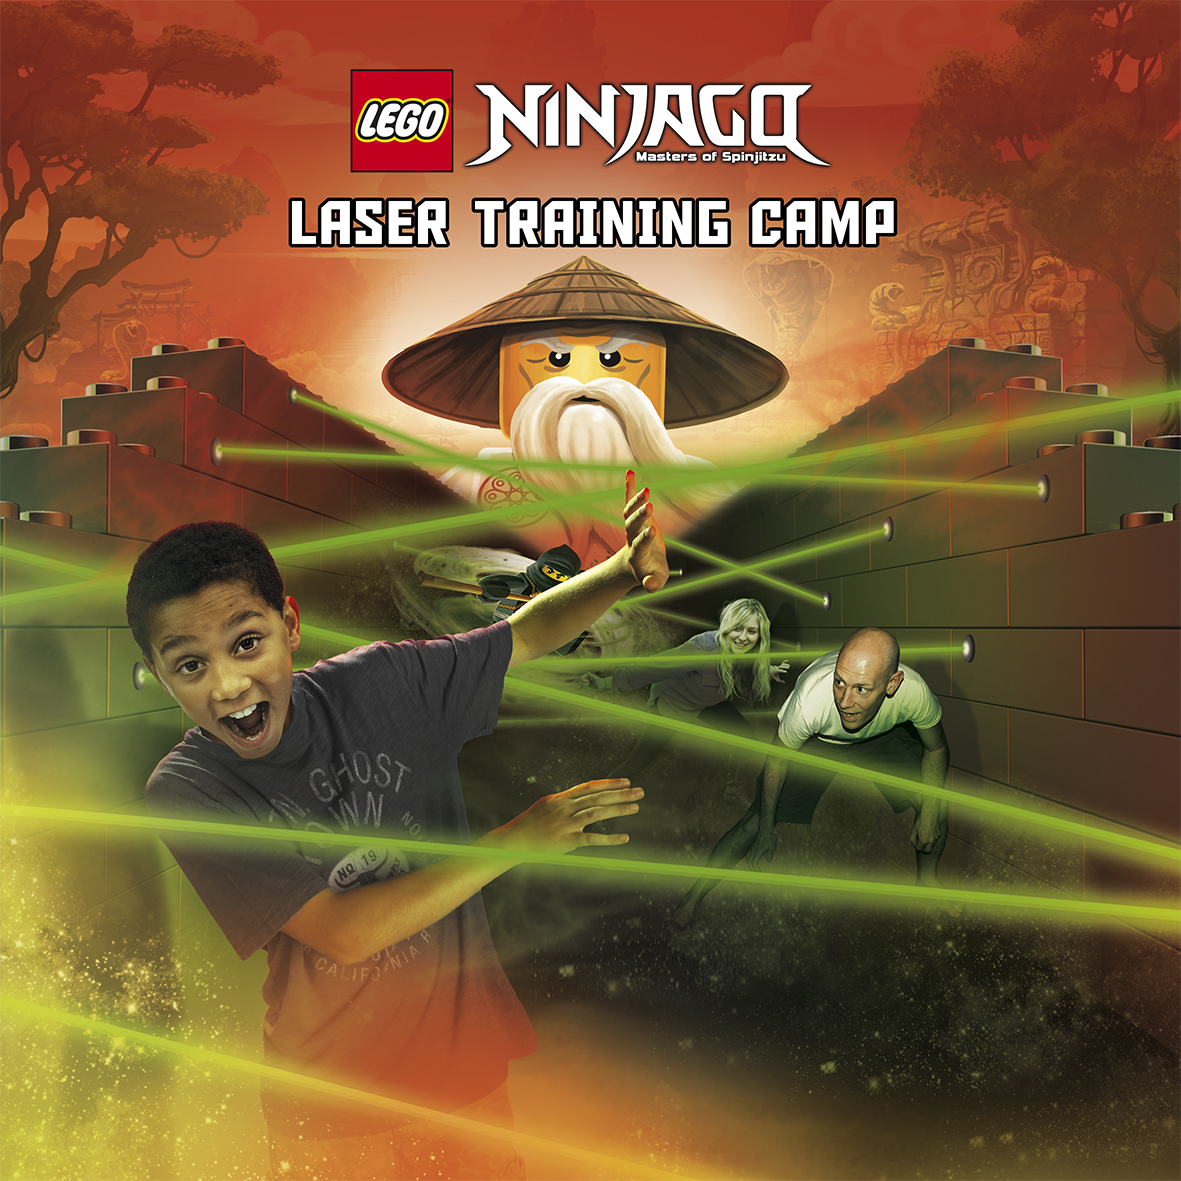 Ninjago Laser Trainingcamp US RGB